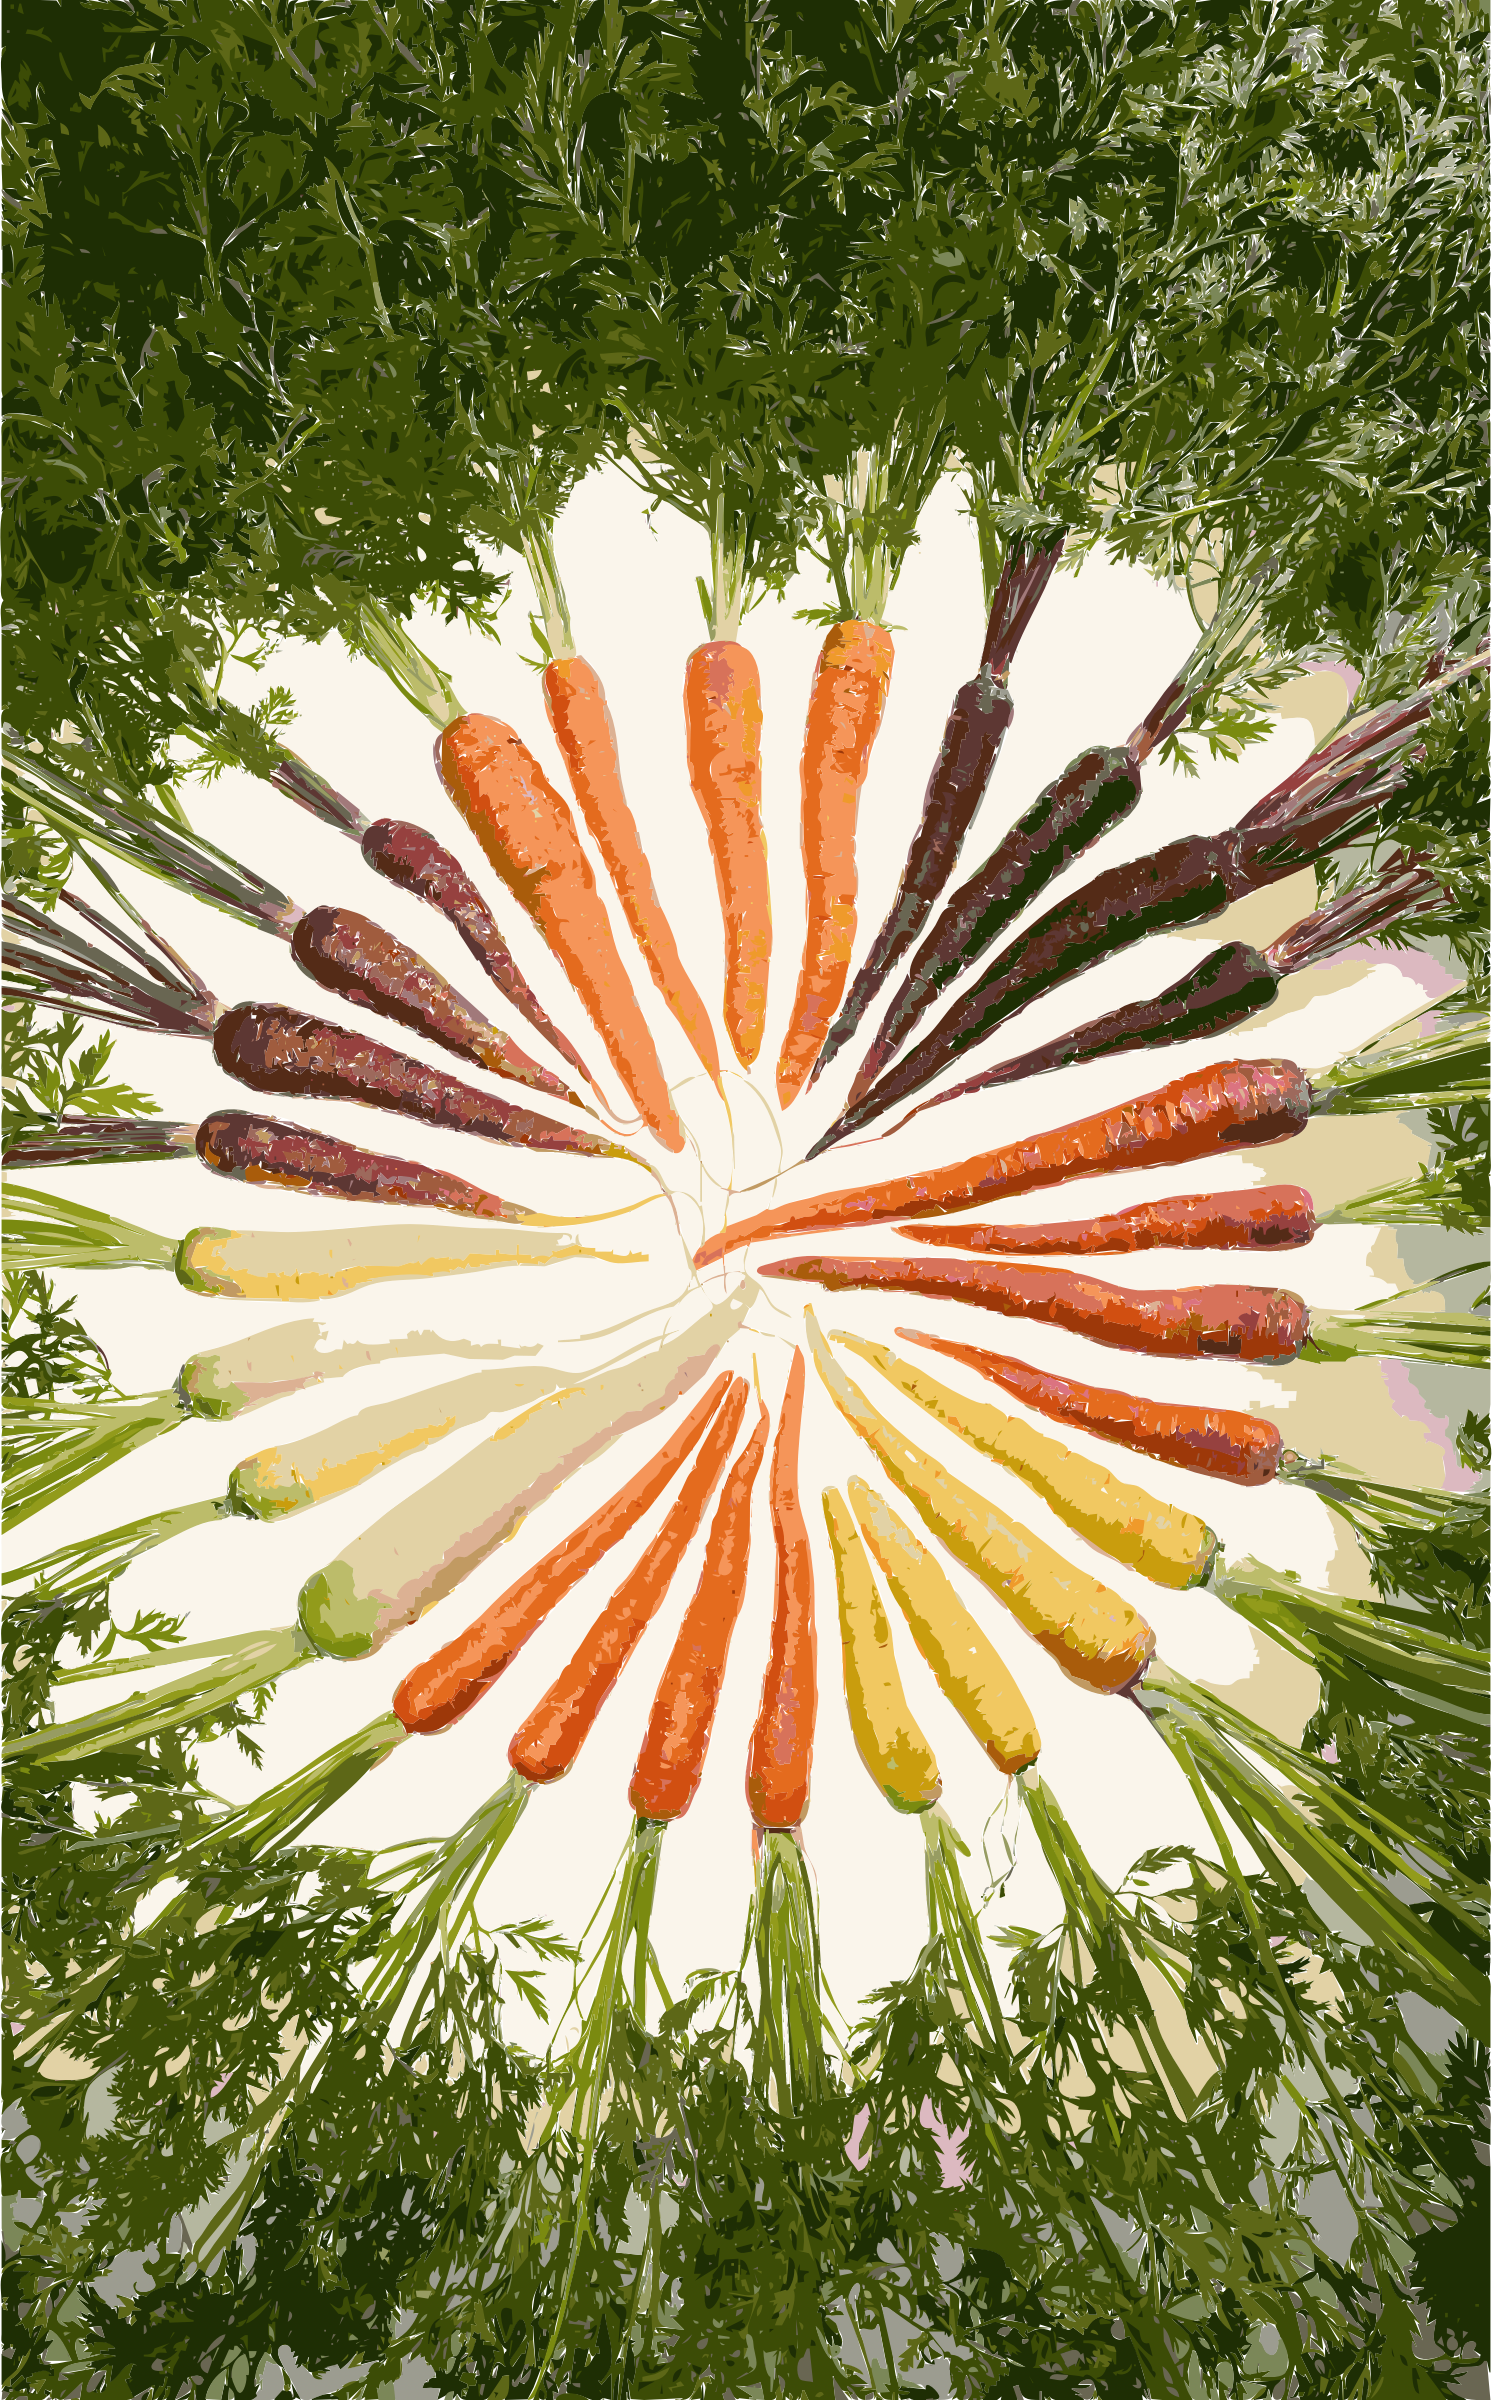 Carrots of many colors by 5n8ag4+endyauppxpaas